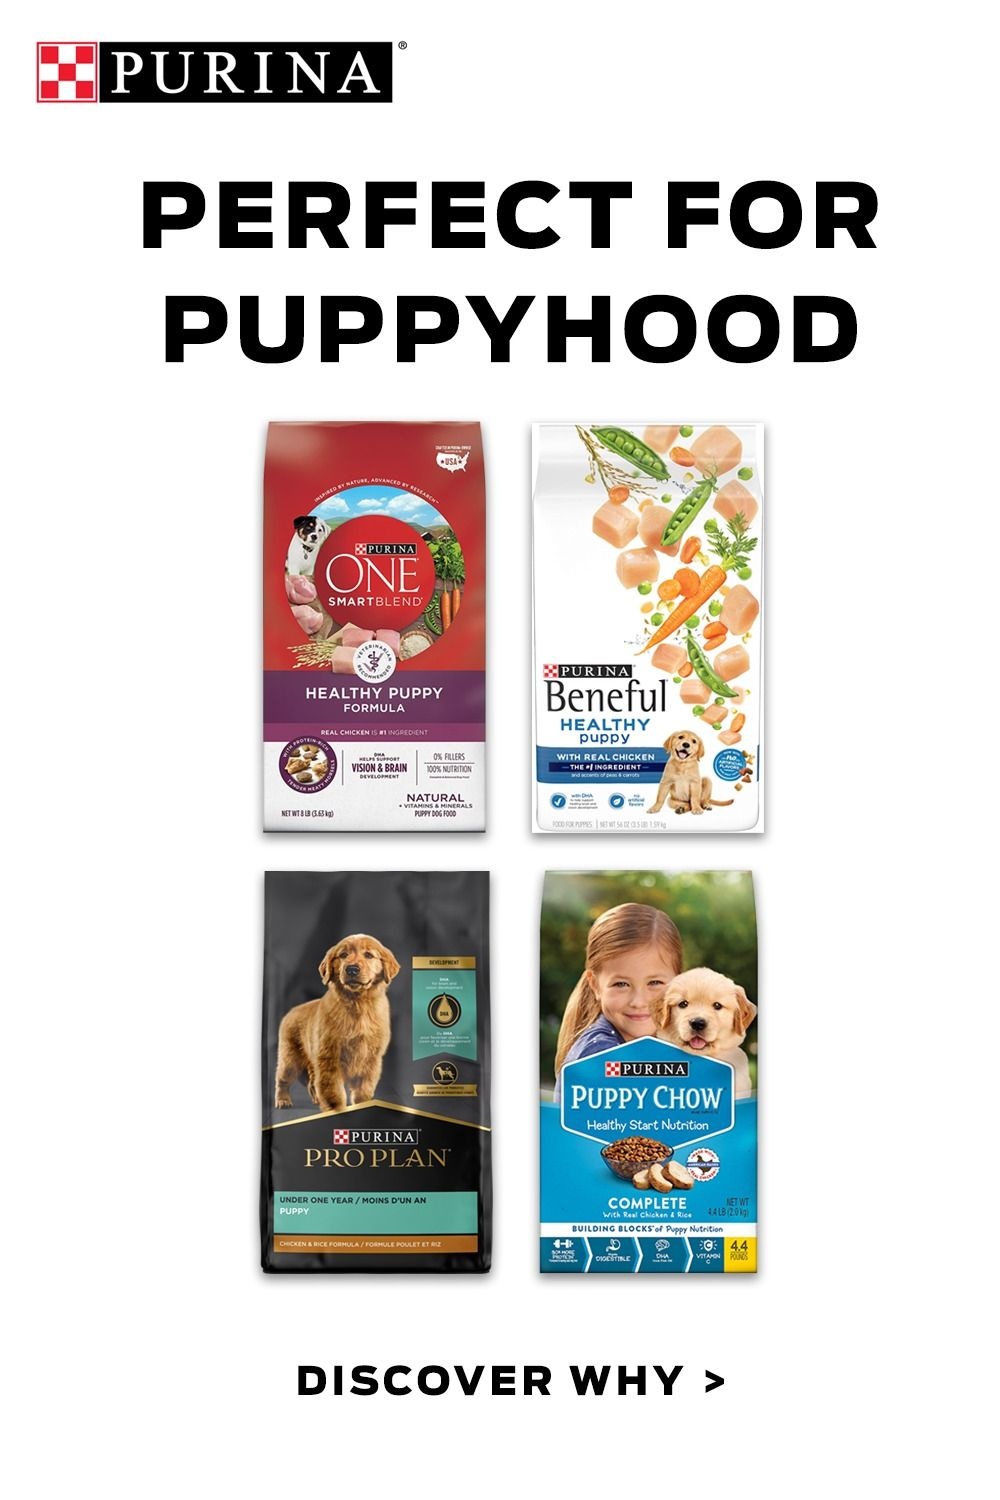 All puppies need puppy food. Purina Puppy Food helps